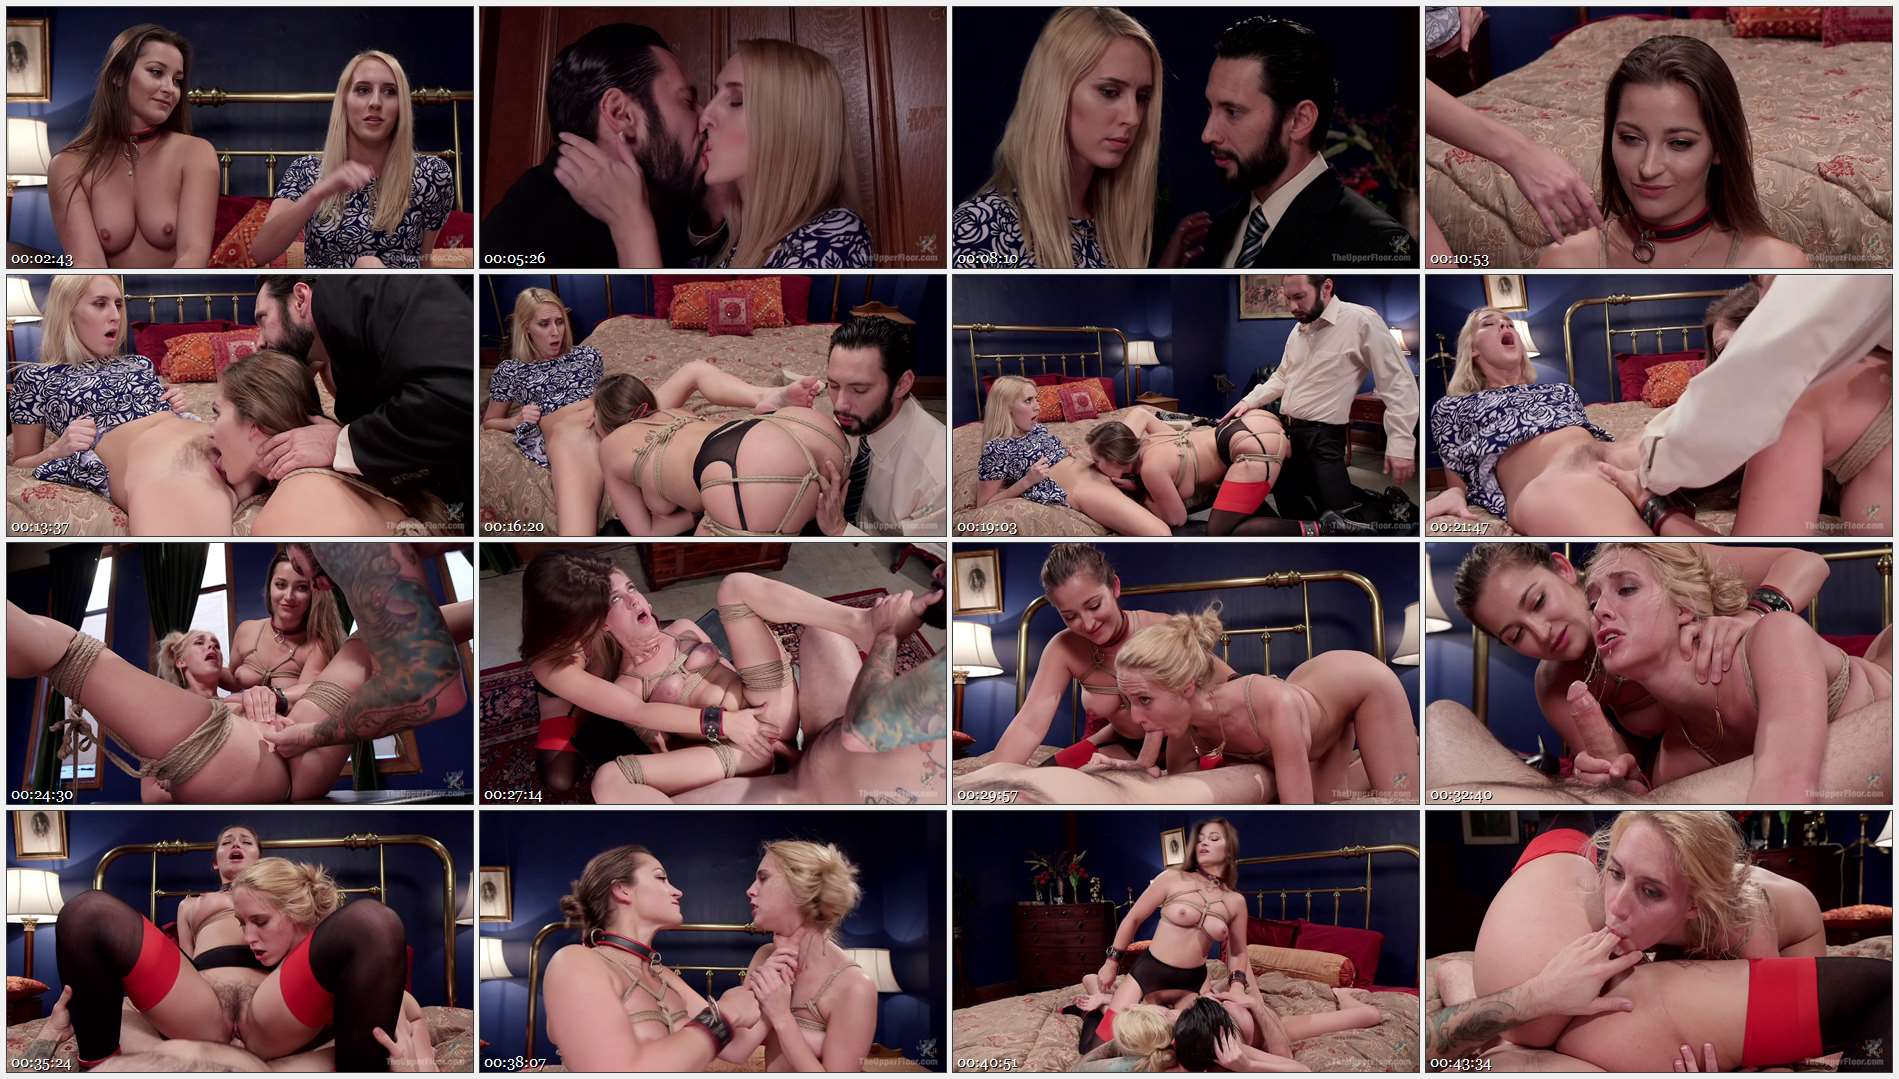 Dani Daniels – Cadence Lux – Tommy Pistol – To Honor & Obey: Virginal fiance trained for Sexual Slavehood